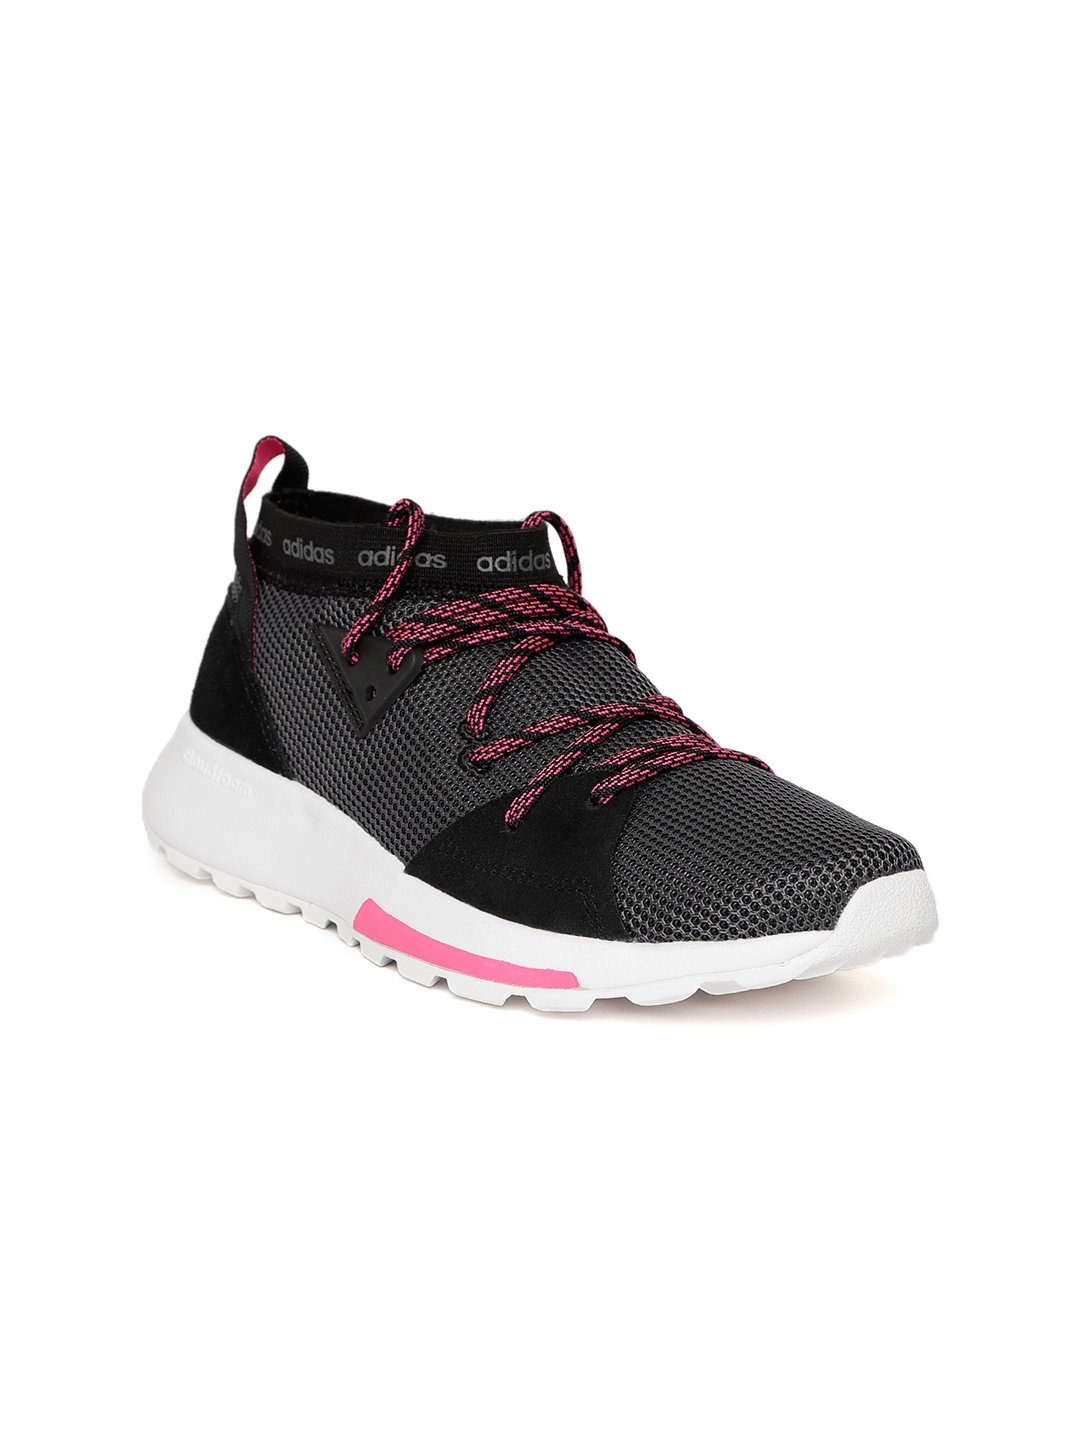 242c716651c Buy ADIDAS Women Charcoal Grey QUESA Running Shoes - Sports Shoes ...